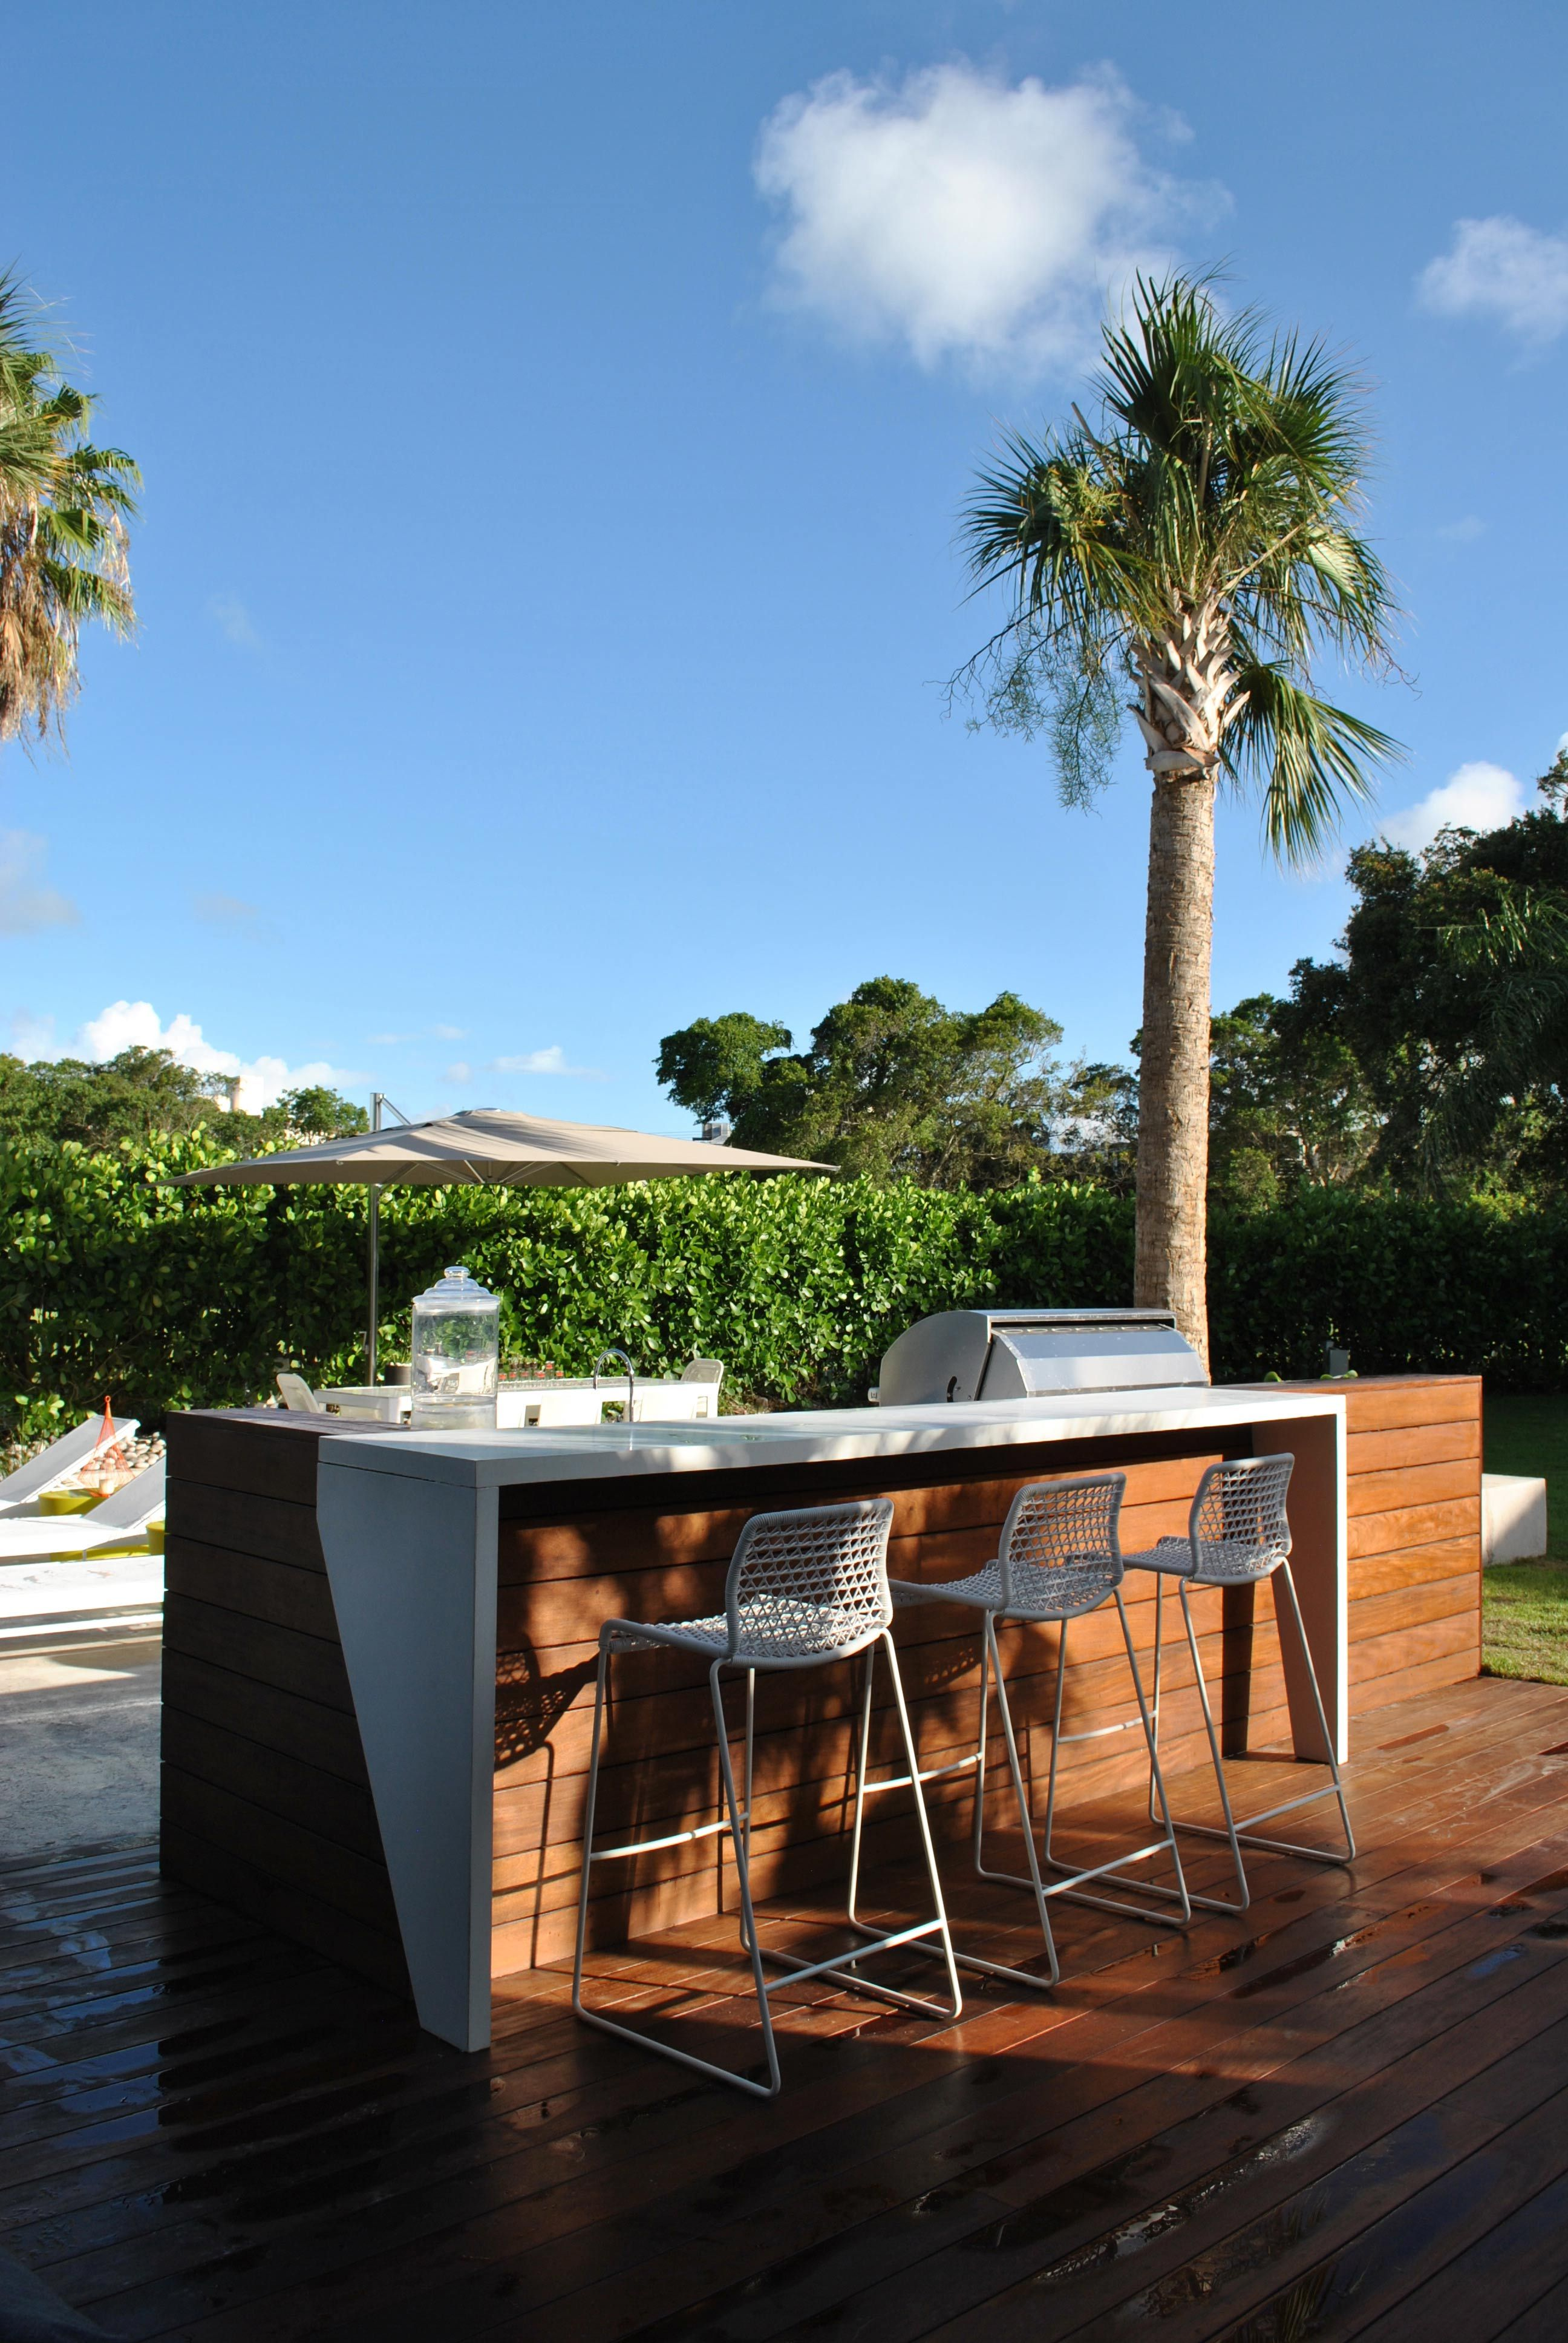 Landscape Modern Interior Design Project In Miami Fl Contemporary Landscaping Ideas Outdoor Kitchen